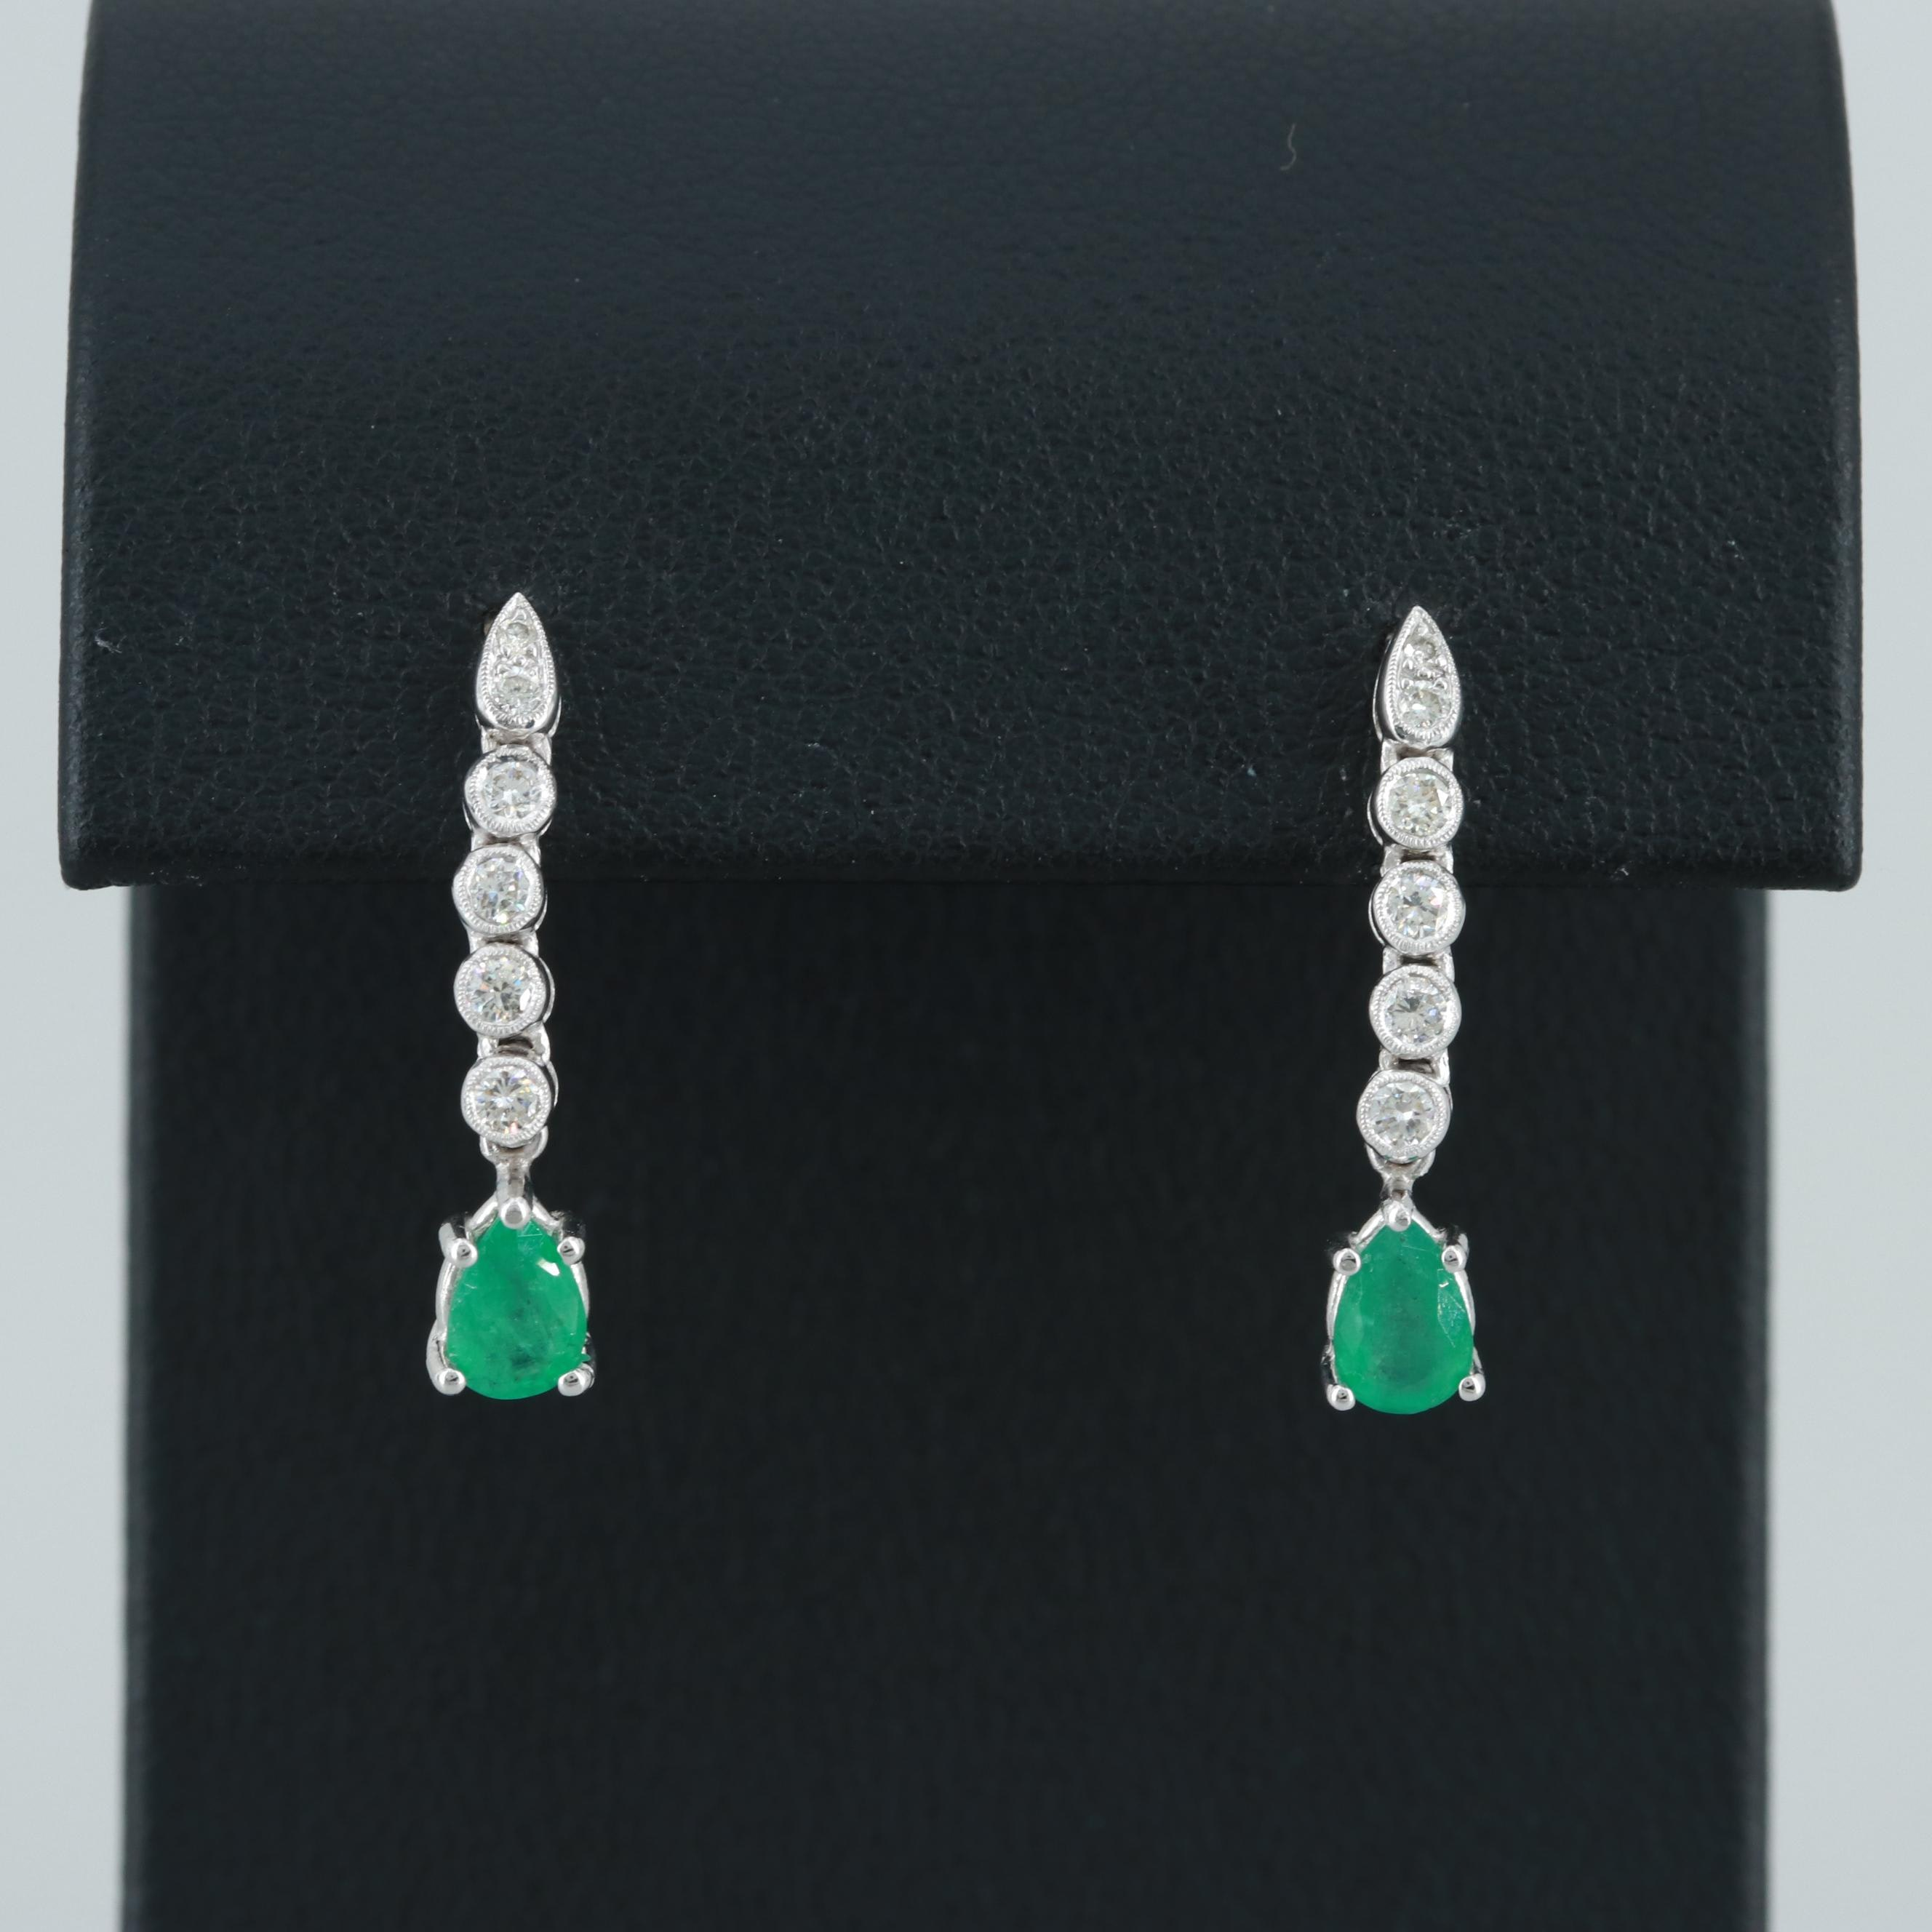 14K and 18K White Gold Emerald and Diamond Earrings